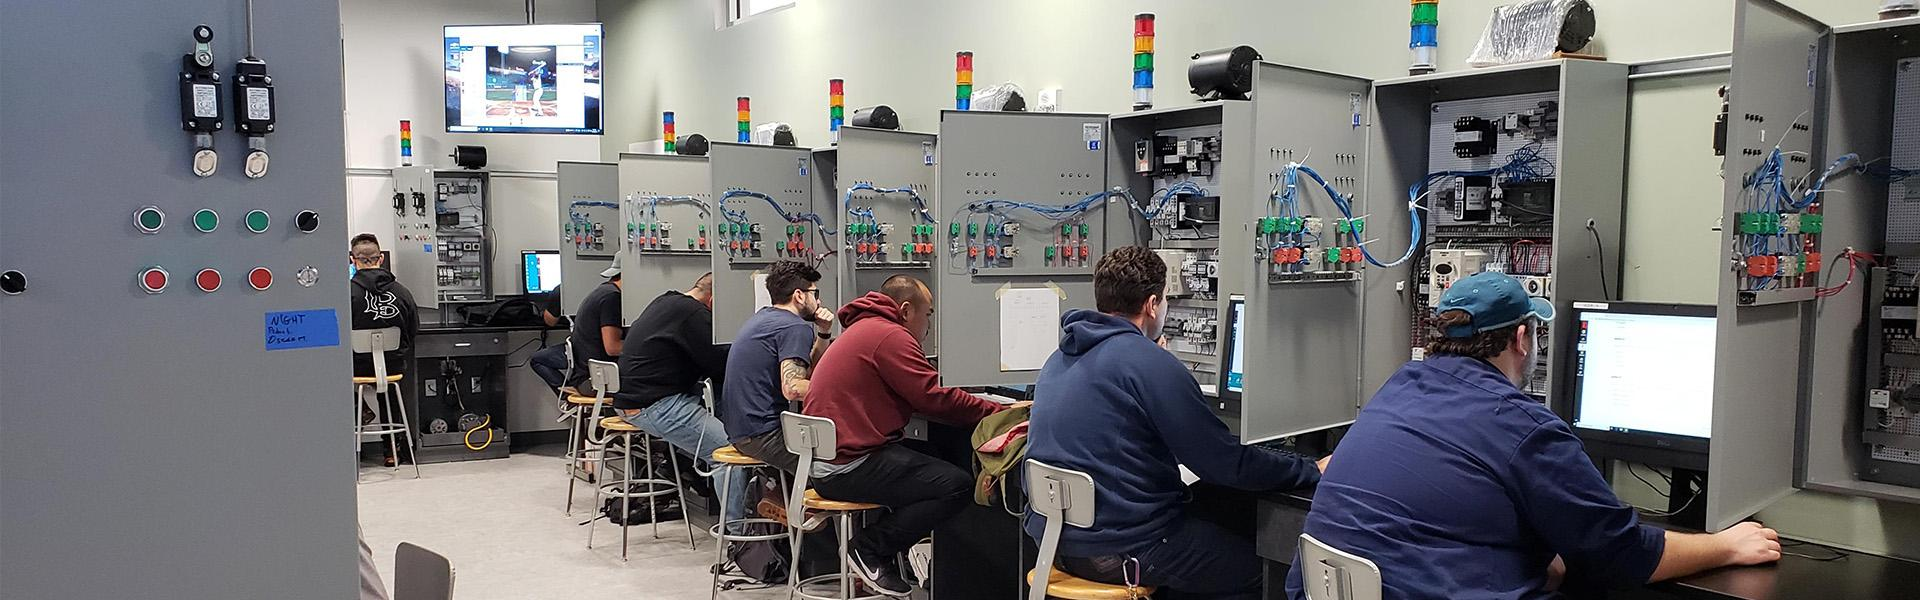 LBCC Students learning in Electrical Technology Lab